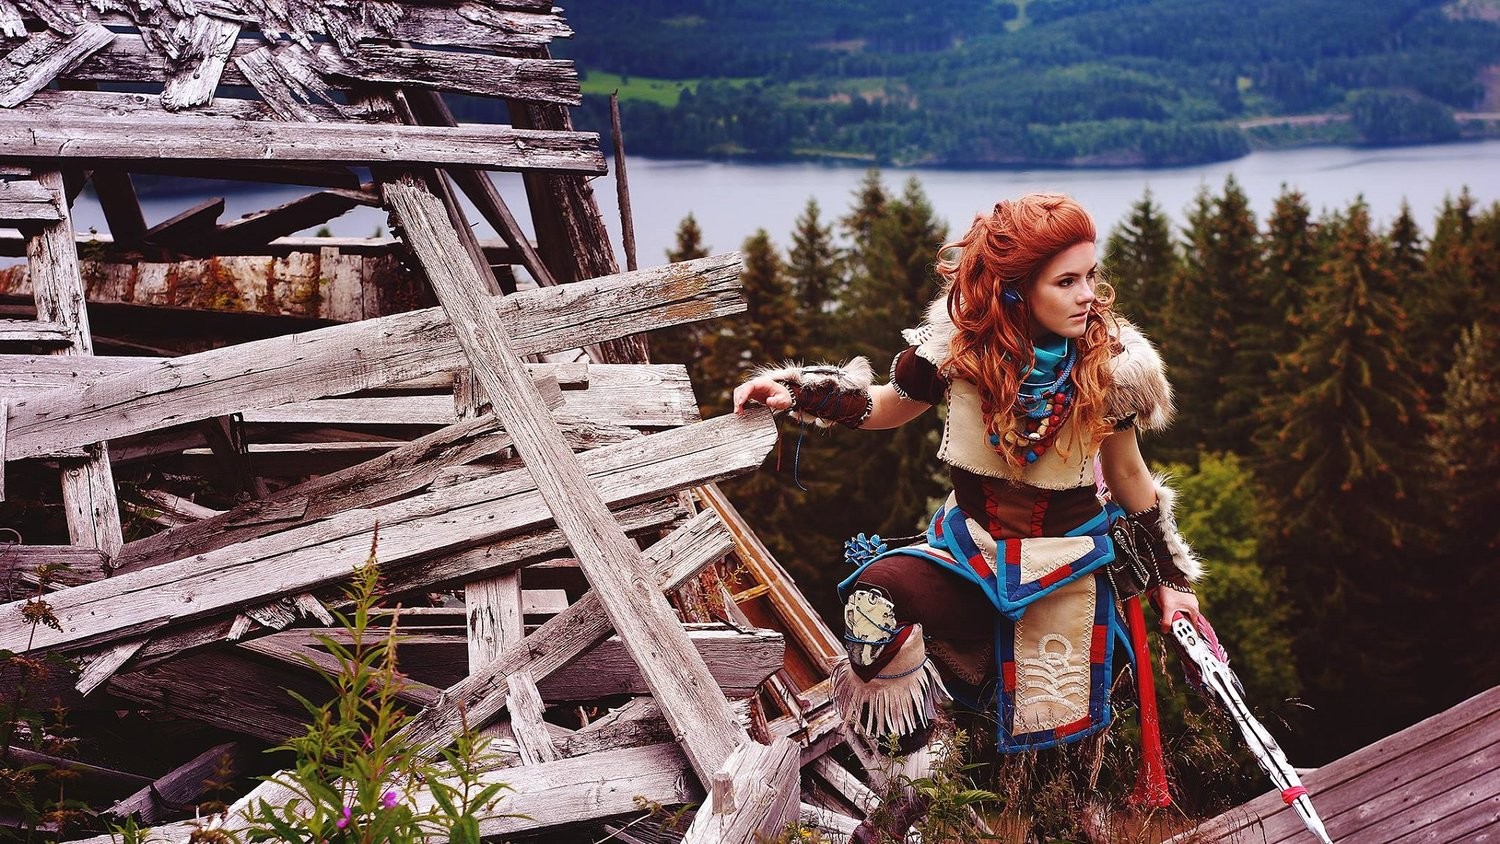 This Awesome HORIZON ZERO DAWN Cosplay Gets Featured By Playstation